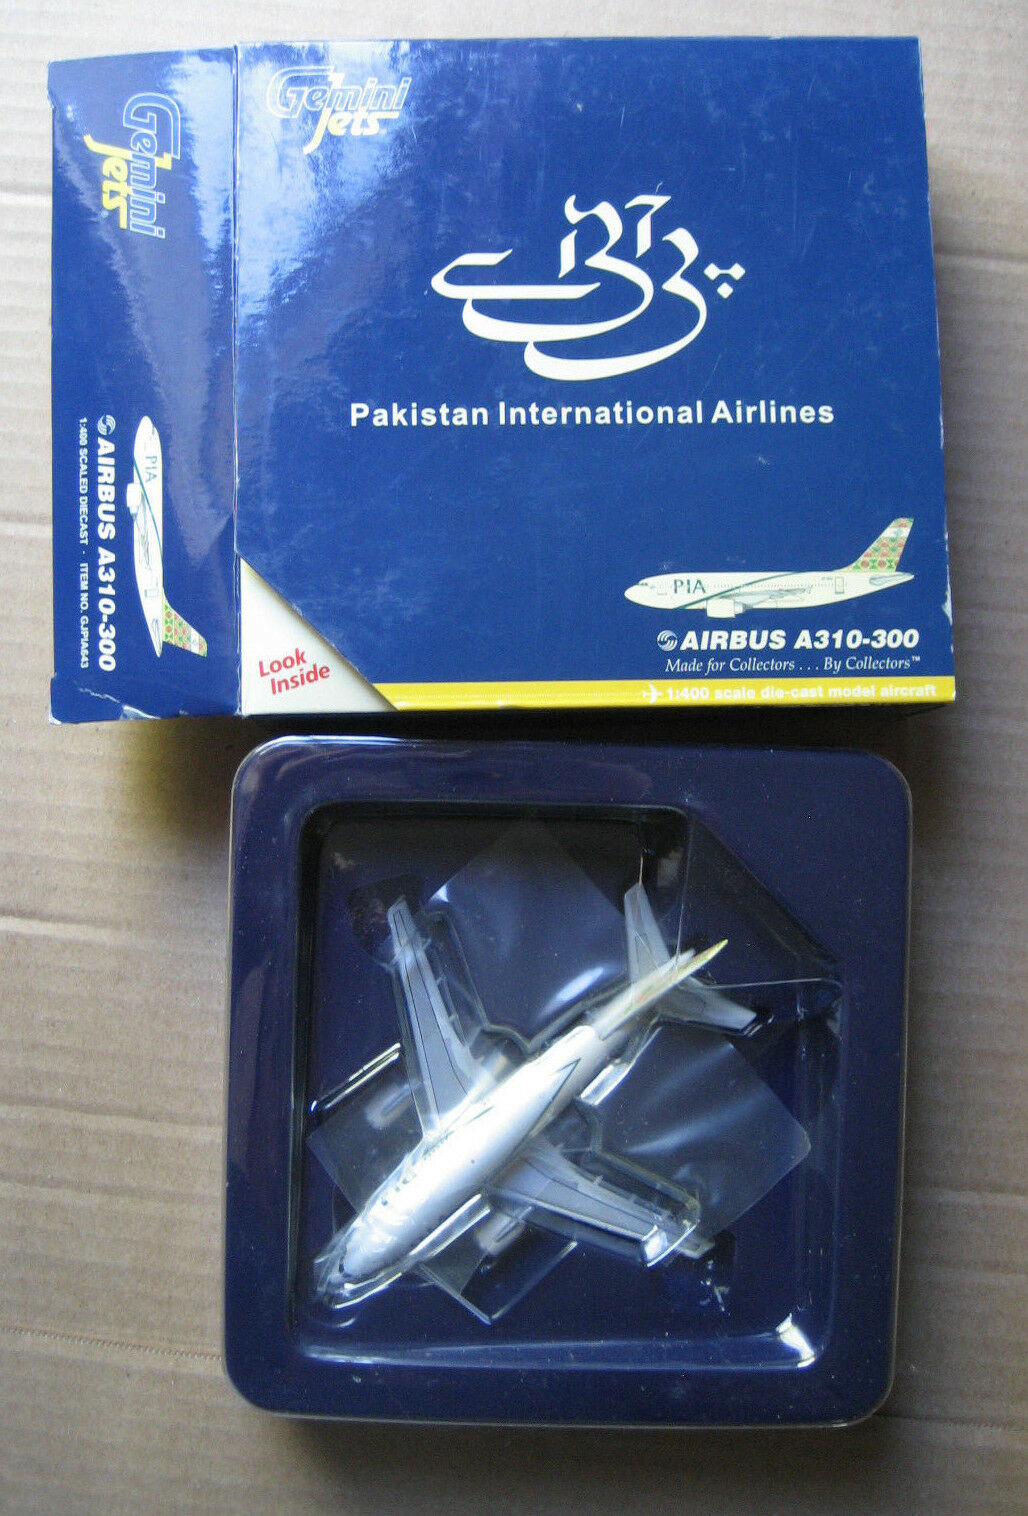 PIA Pakistan International Airlines Airbus A310-300 Gemini Jets AP-BEU model box